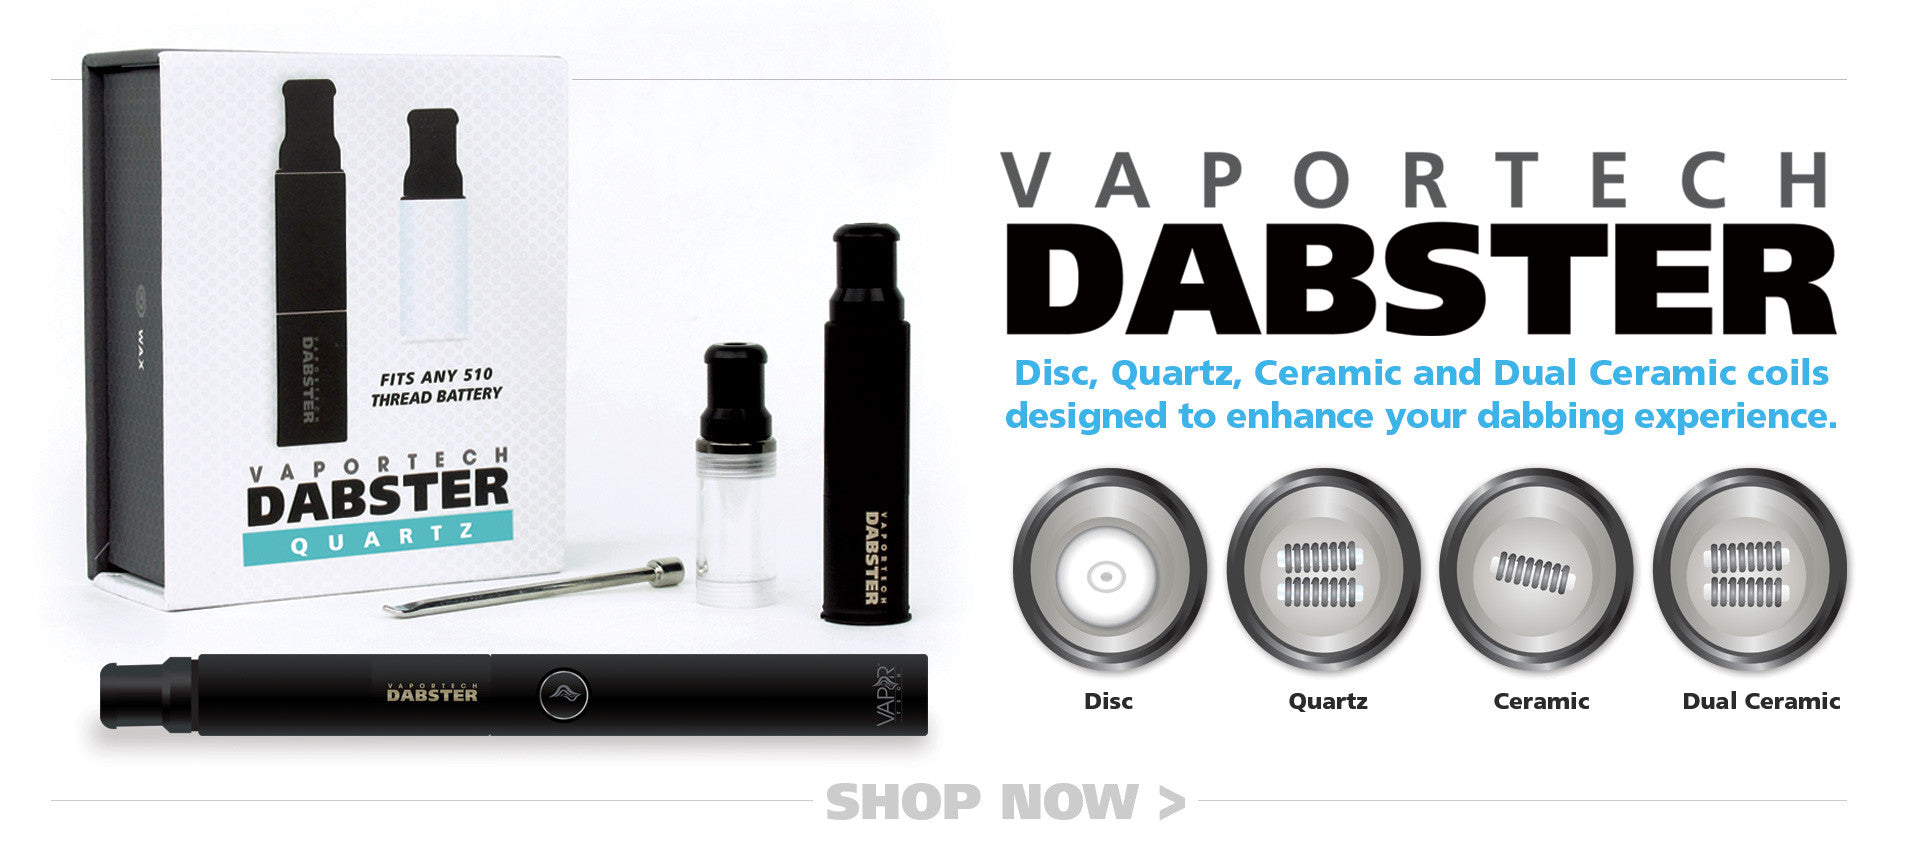 VaporTech Dabster and Dabster Coils - Single Ceramic, Dual Ceramic, Dual Quartz Coil, Ceramic Disc